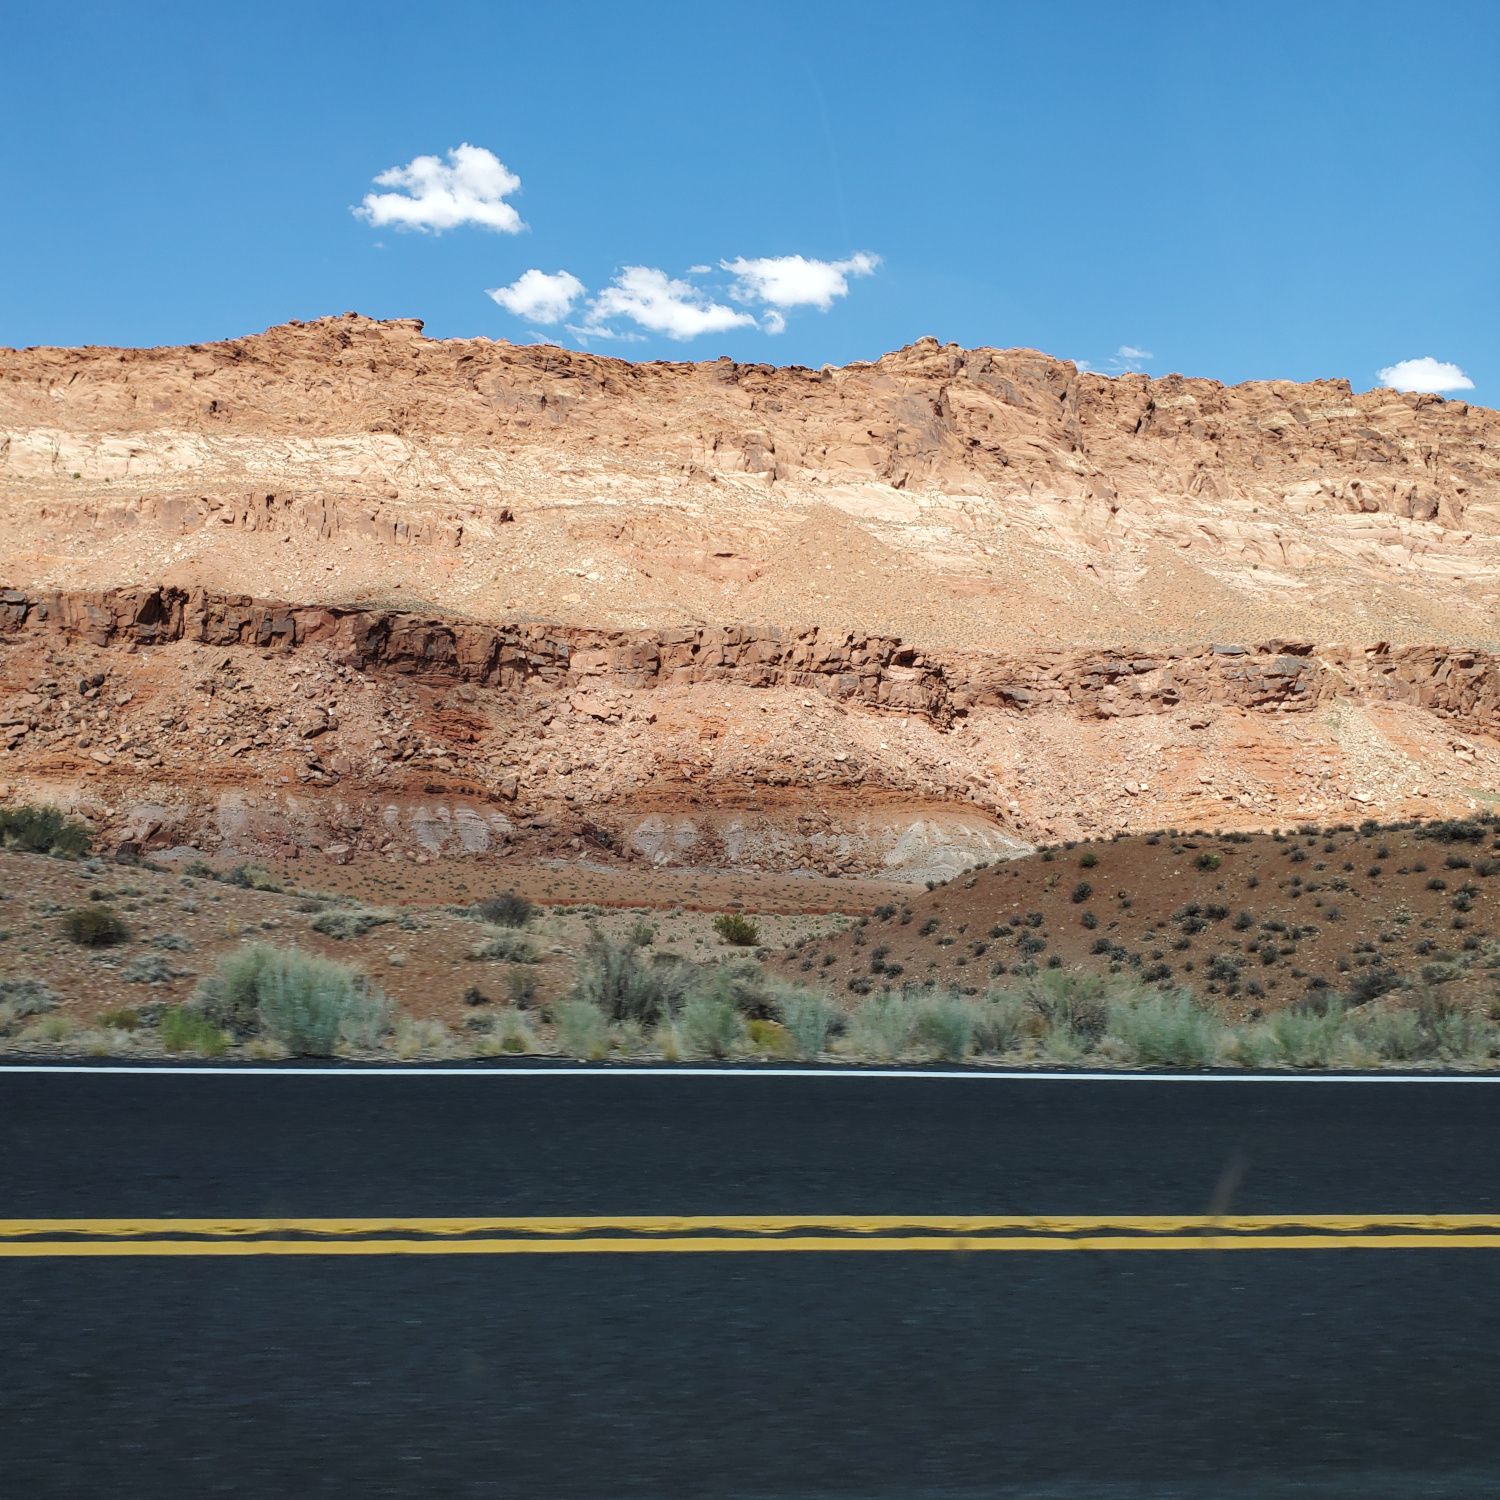 The view next to the road in Northern Arizona